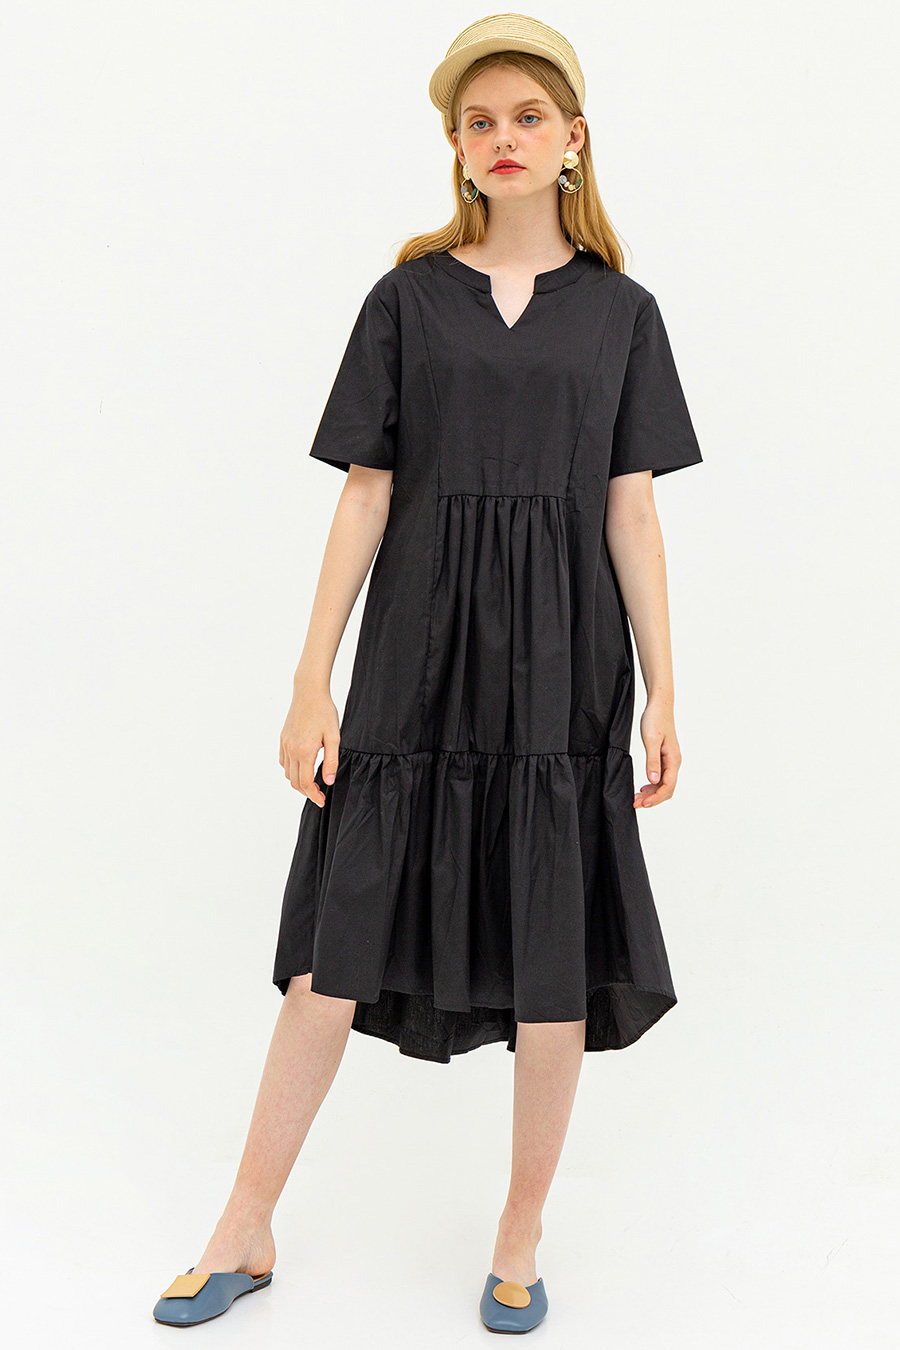 TANIYAH DRESS - NOIR